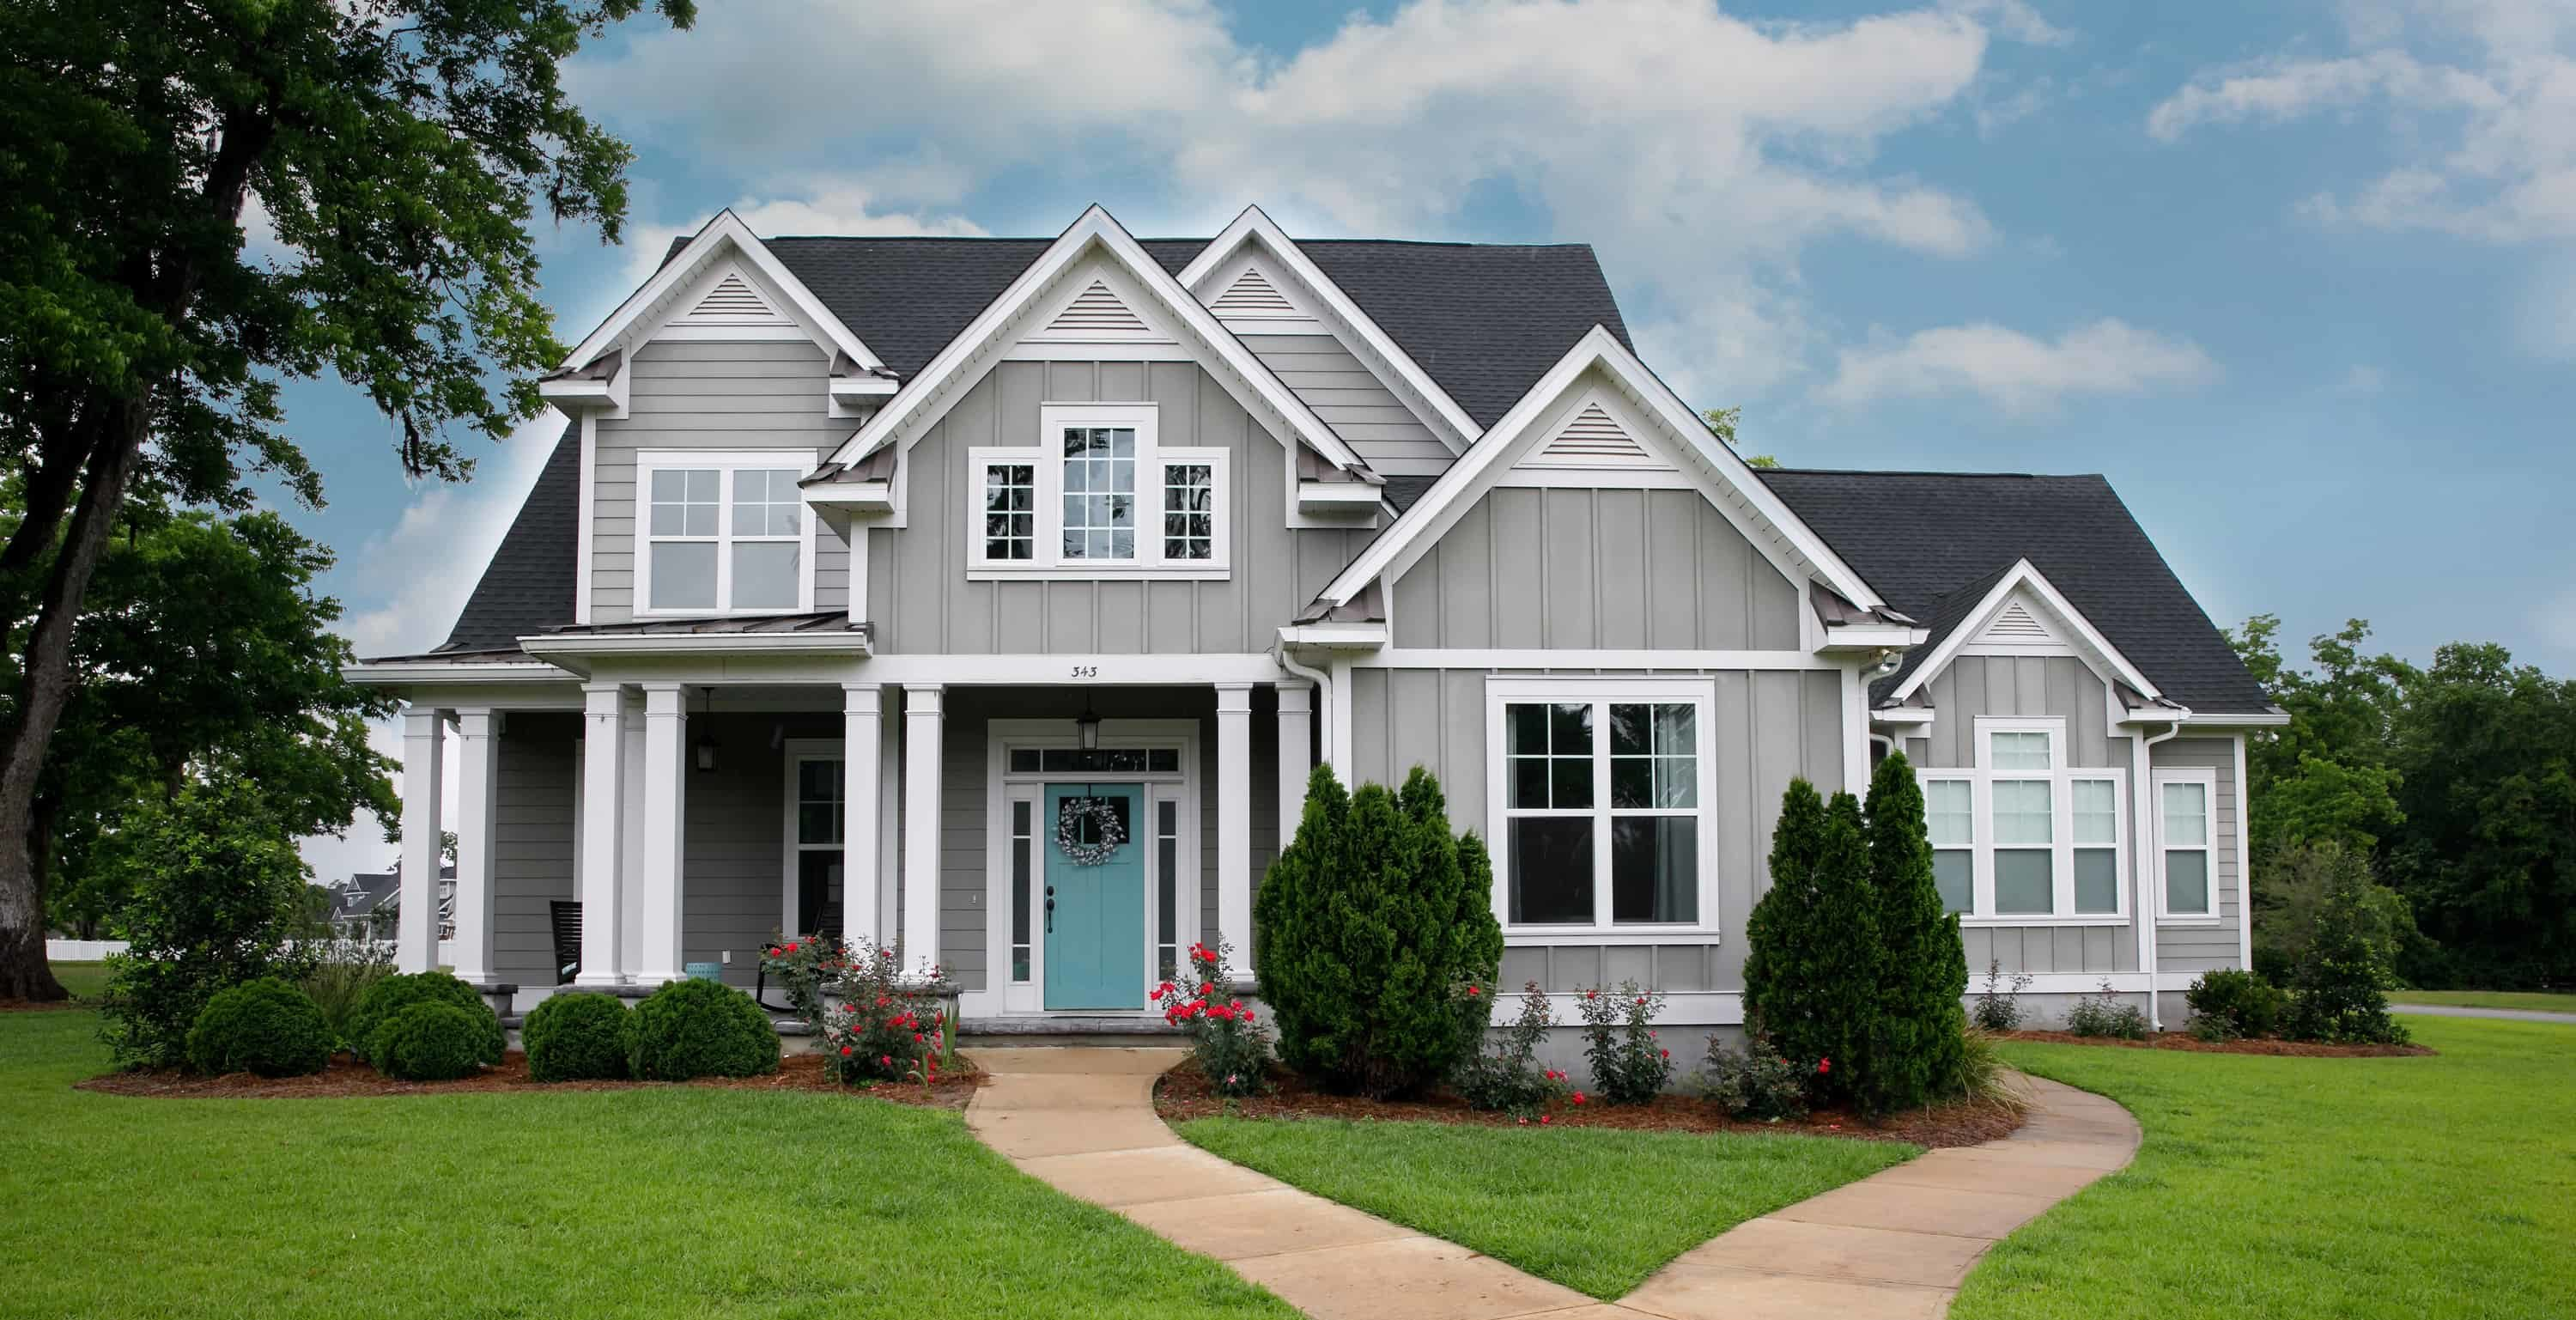 Improve Your Home's Curb Appeal With a Beautiful Roof